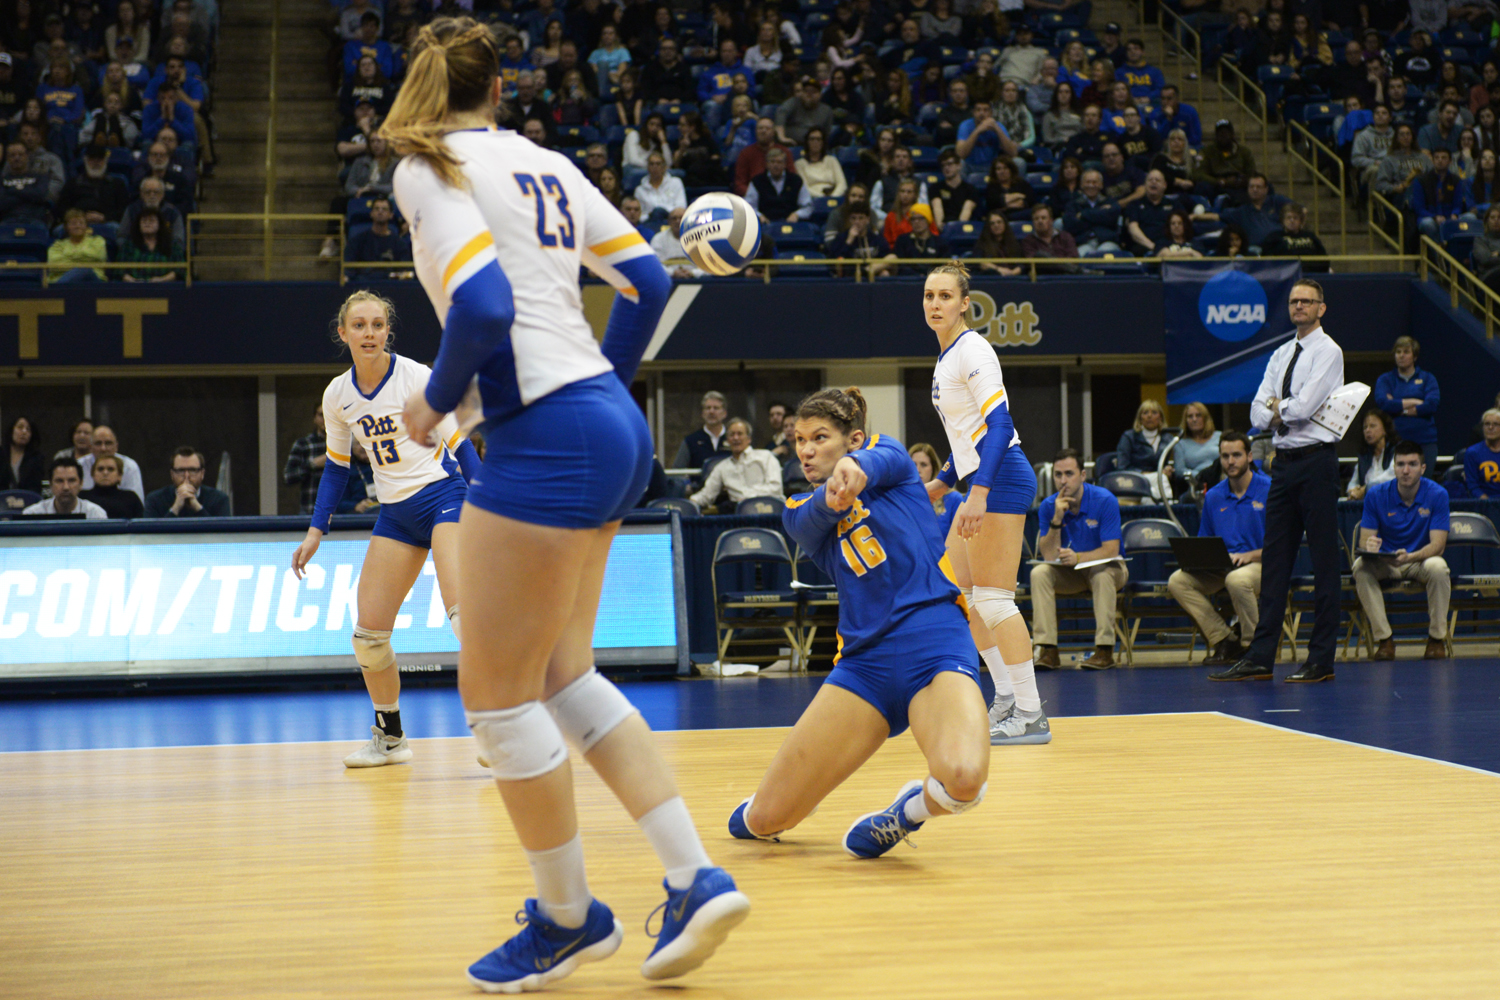 Redshirt senior Angela Seman had 11 digs during the team's win over Iona in the first round of the NCAA Tournament Friday night.